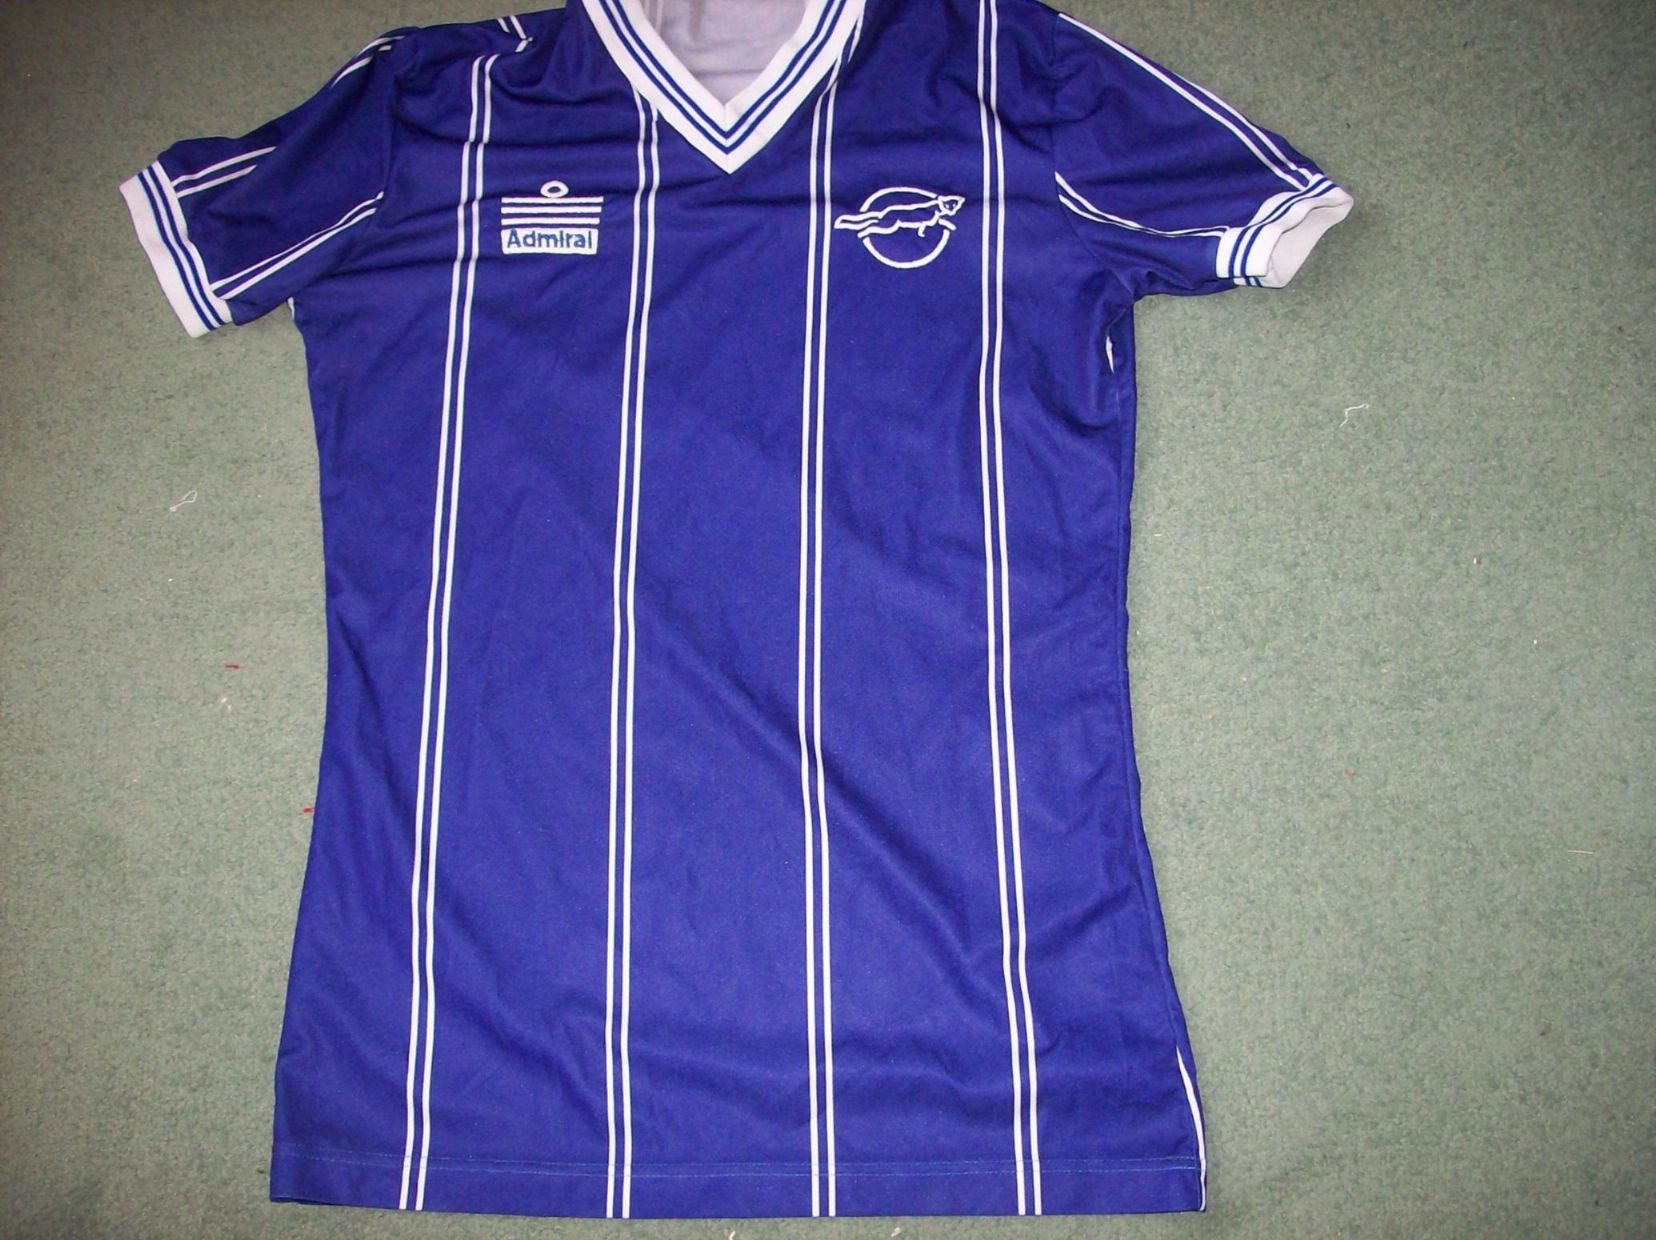 Global Classic Football Shirts | 1983 Leicester City ...